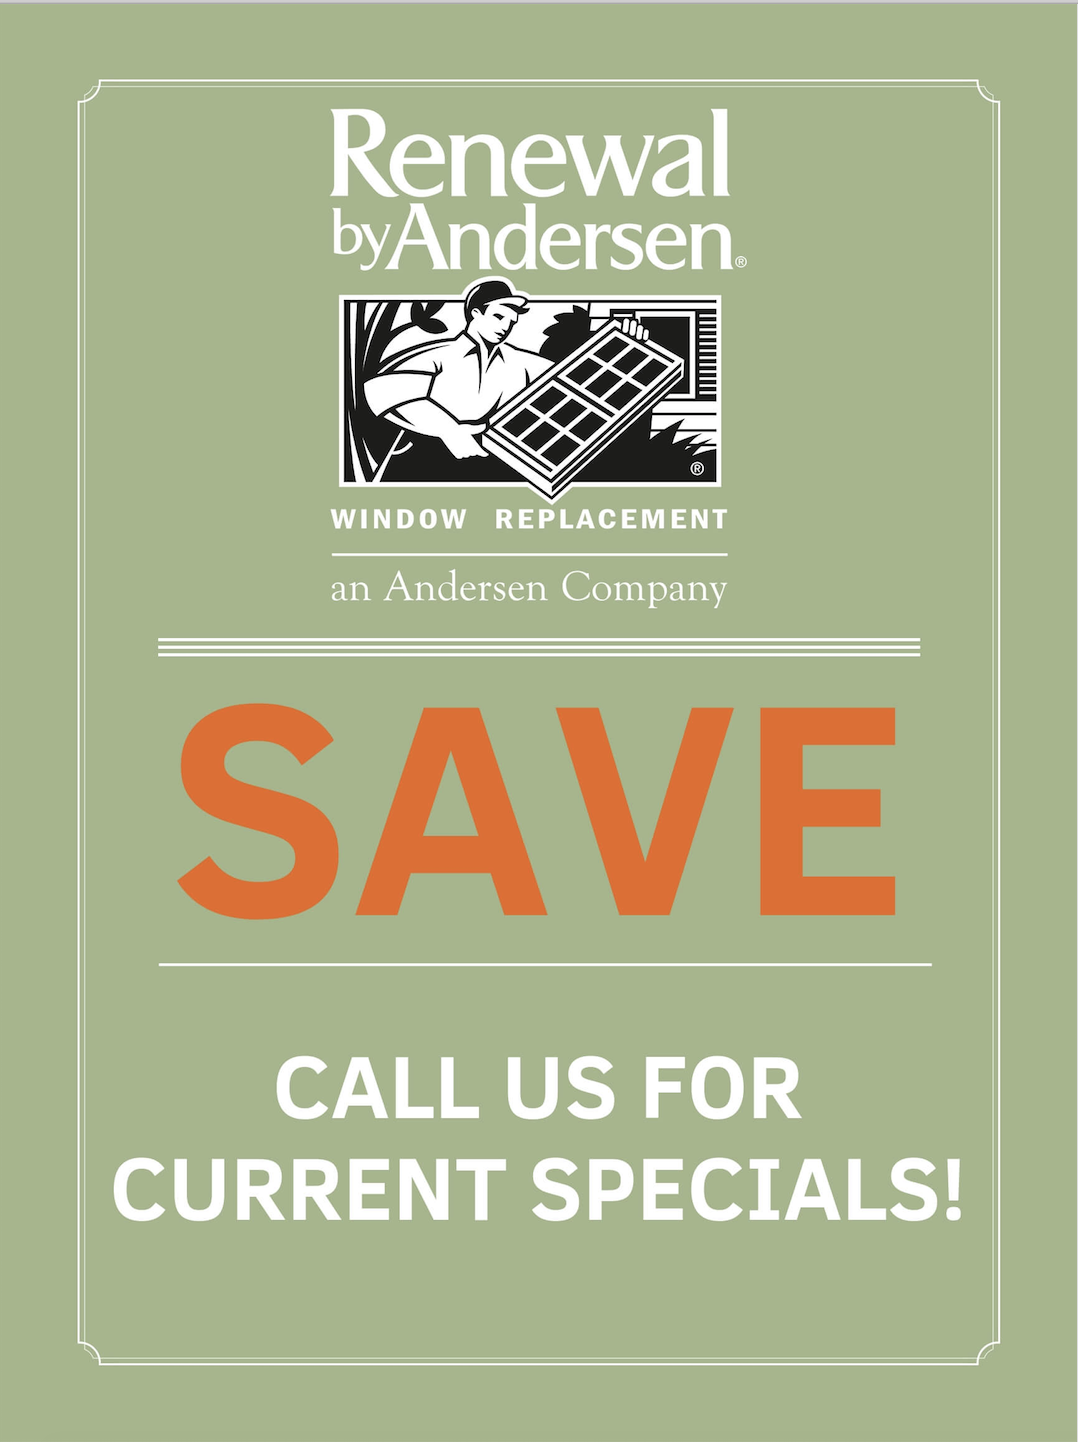 Minneapolis window replacment promotion